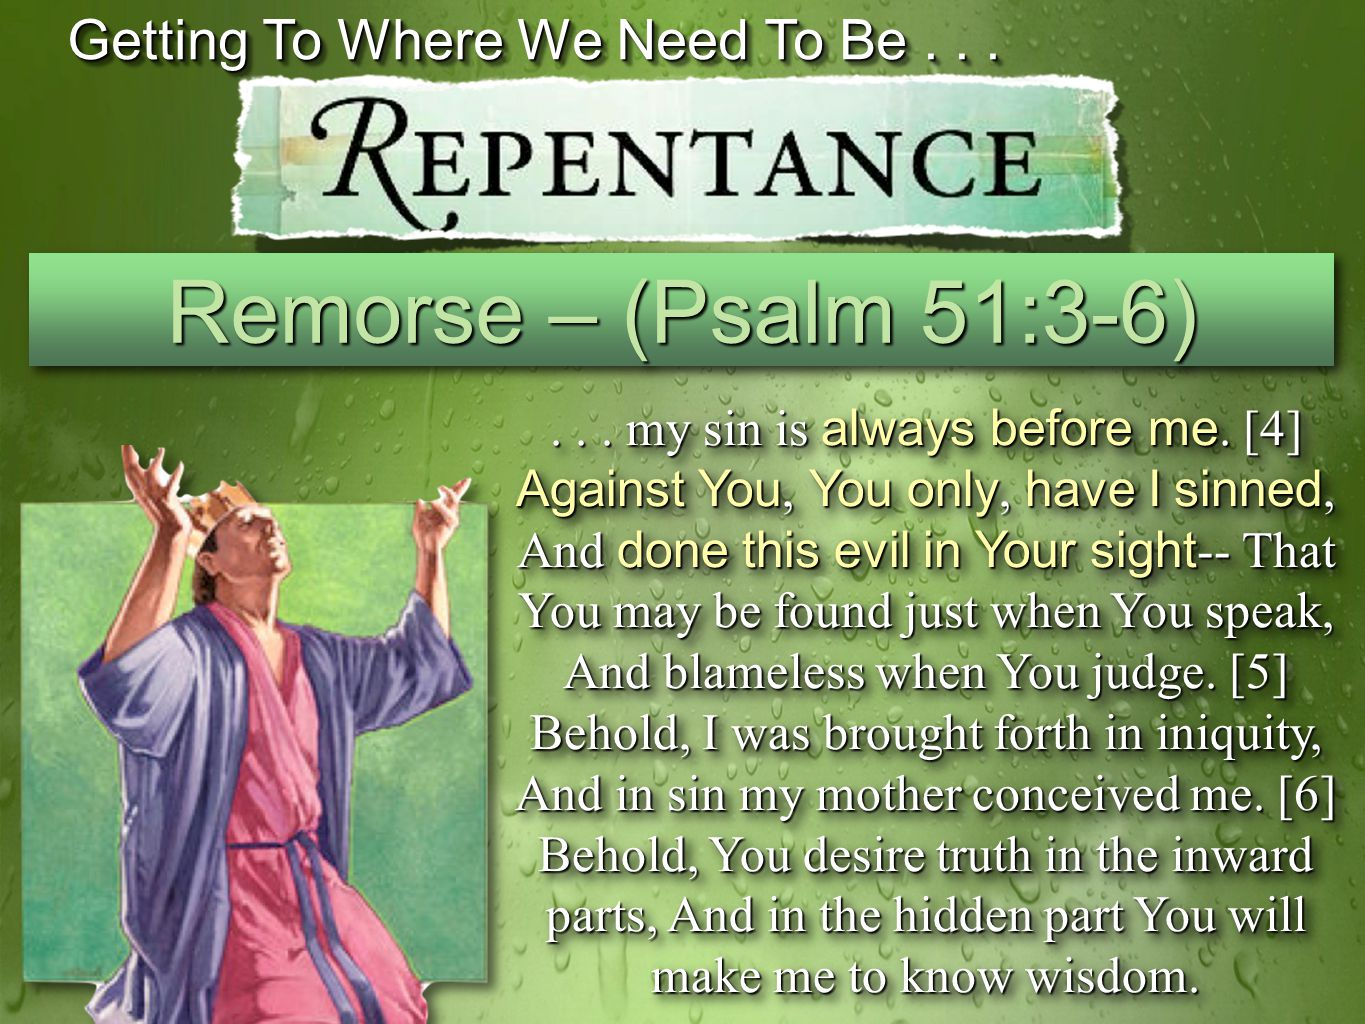 Getting To Where We Need To Be...Remorse – (Psalm 51:3-6)...